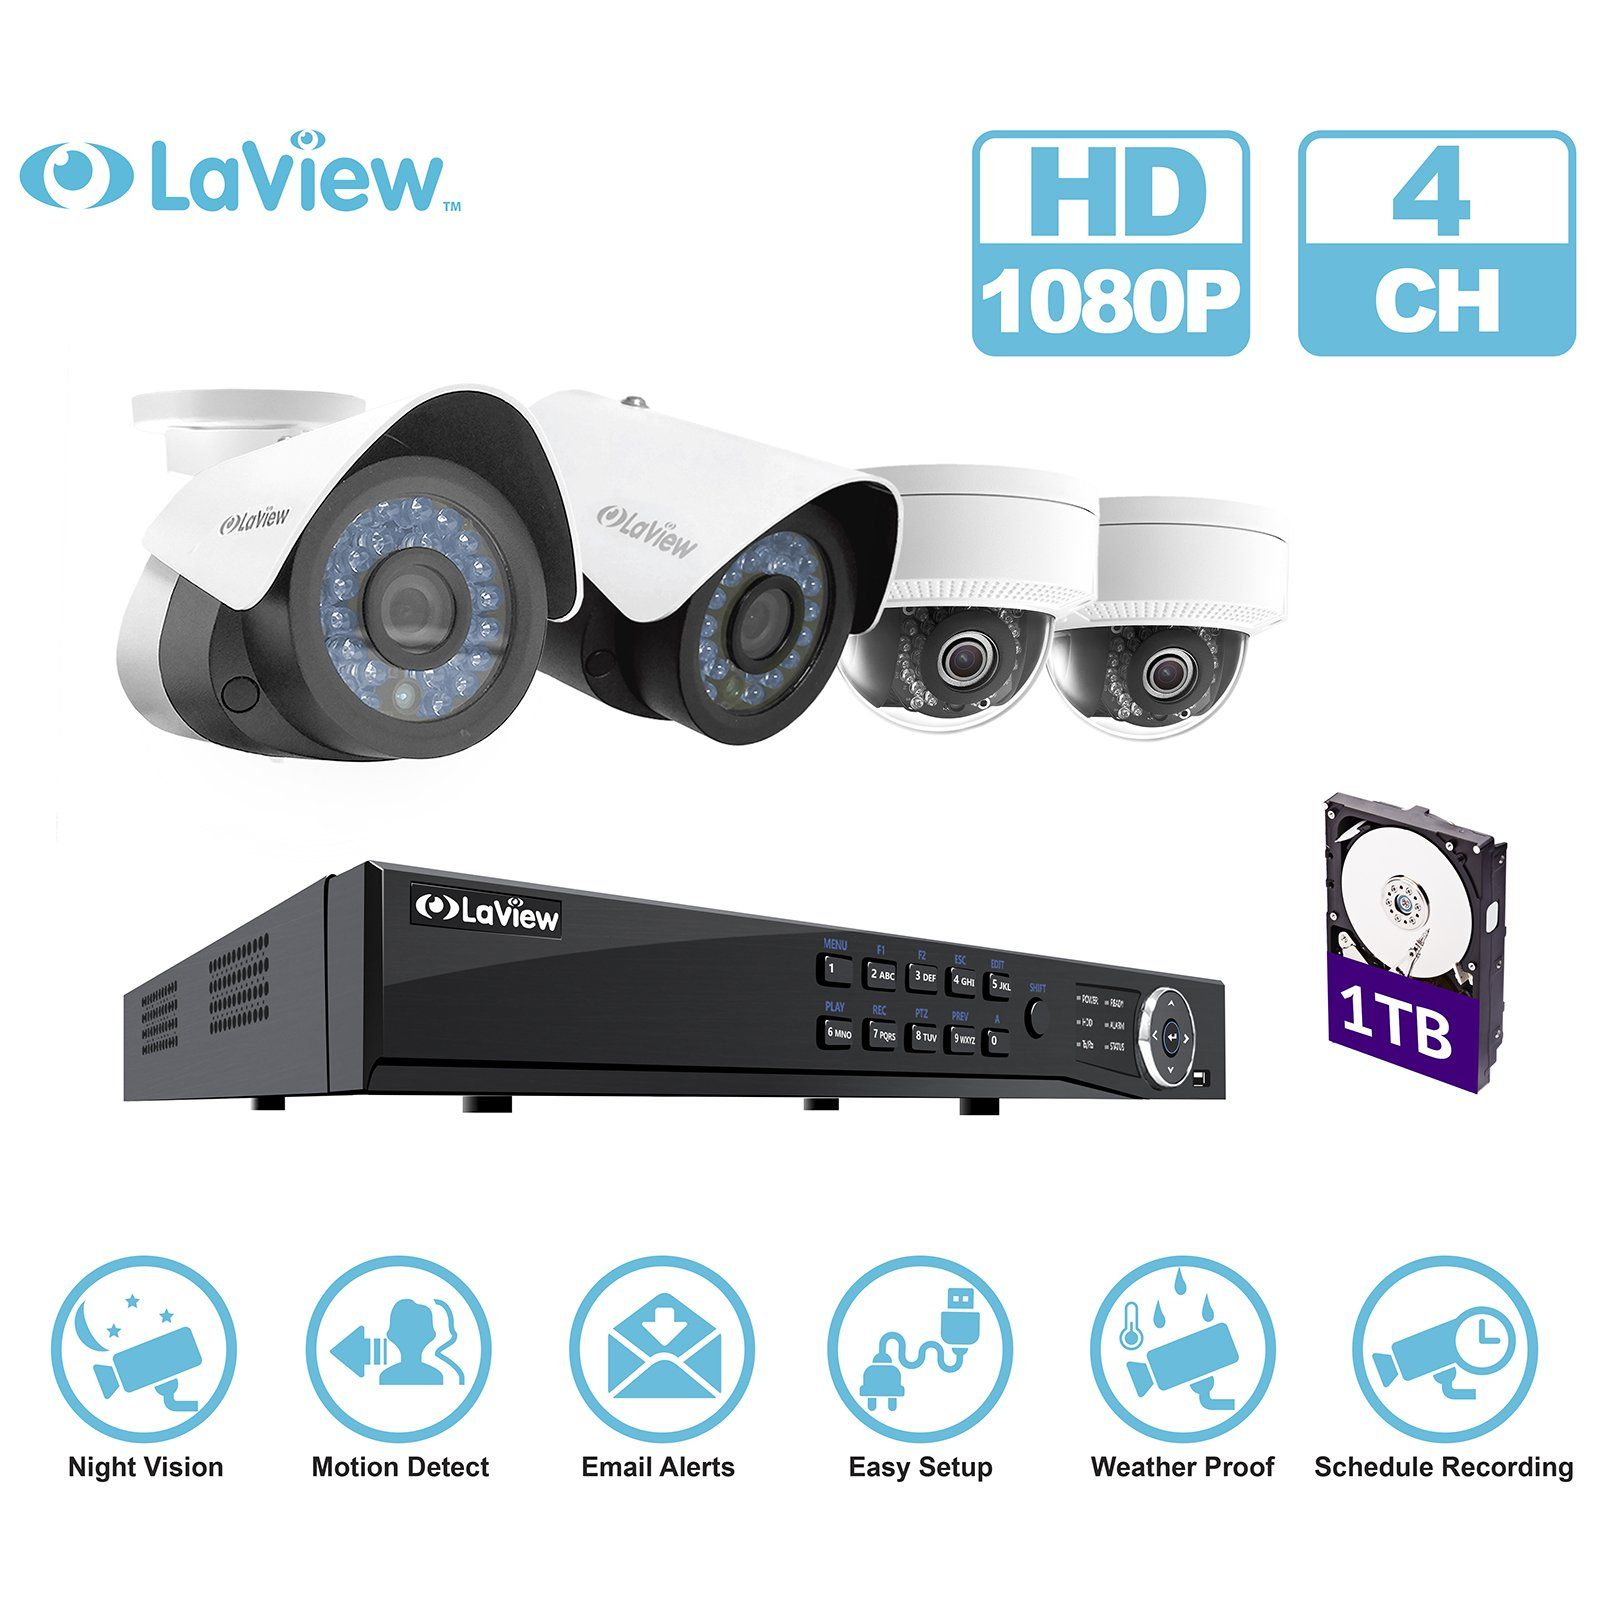 LaView IP P HD Builtin PoE Cameras Channel NVR Security